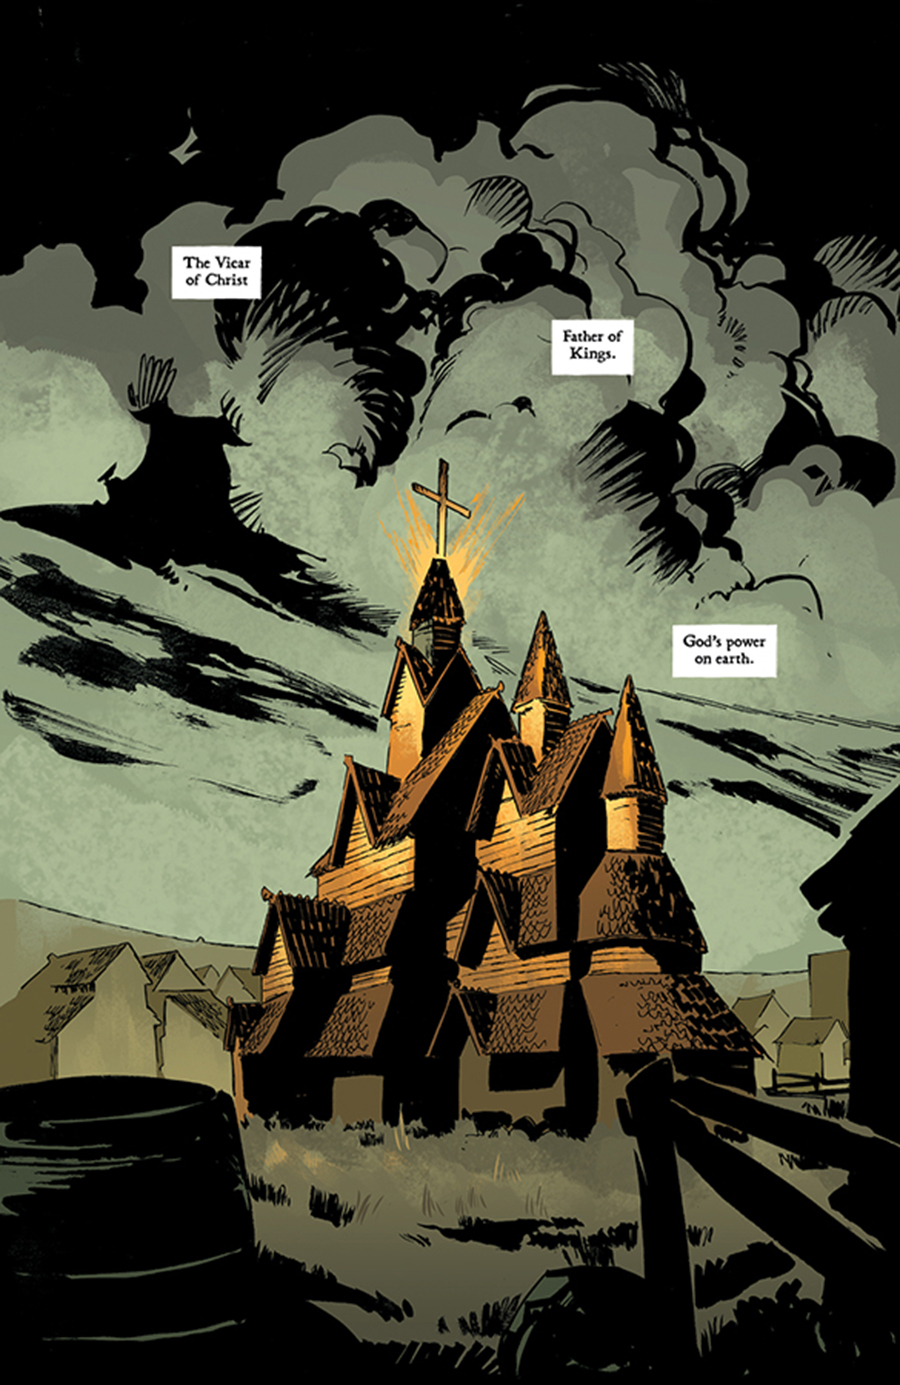 From Black Road #3